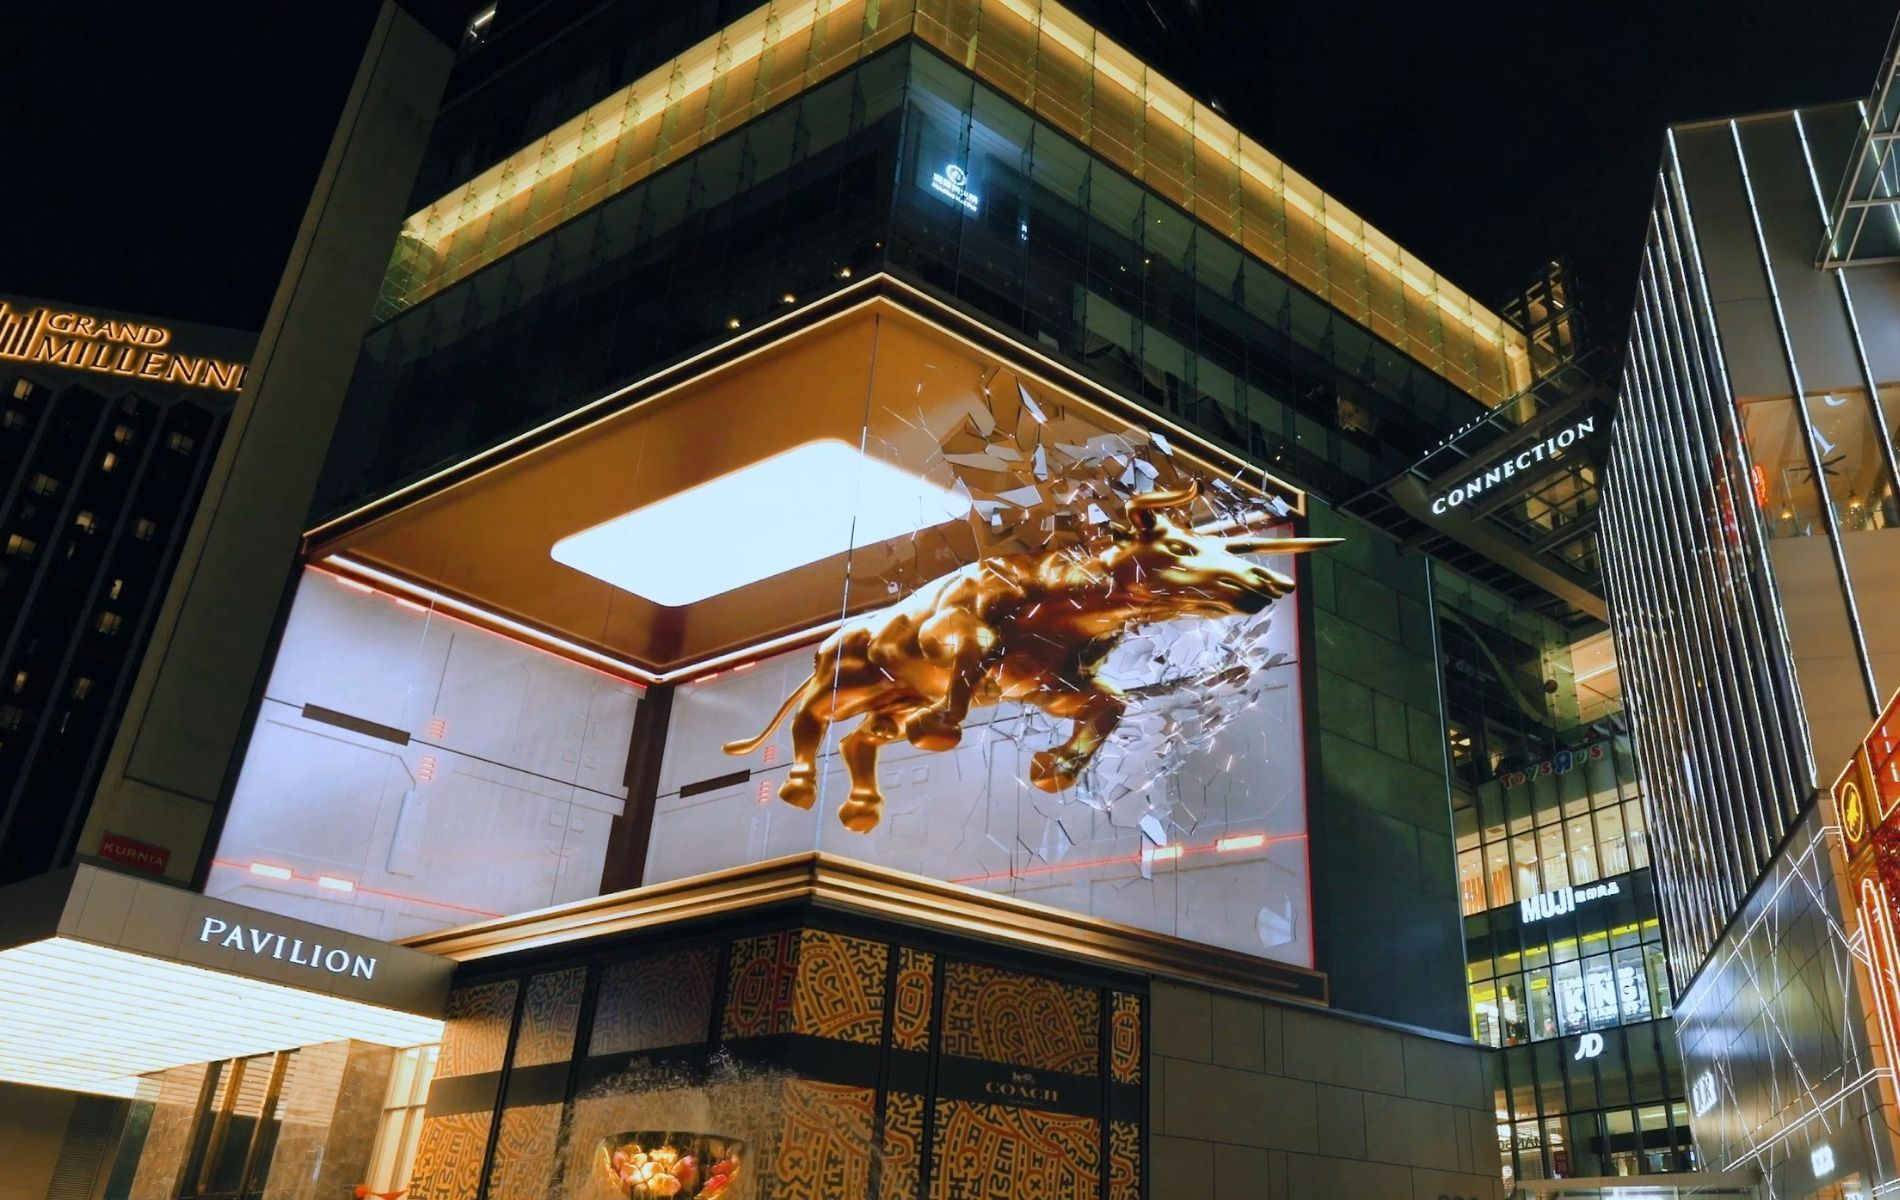 Pavilion Kuala Lumpur Thrills Shoppers With A 3D Charging Golden Bull